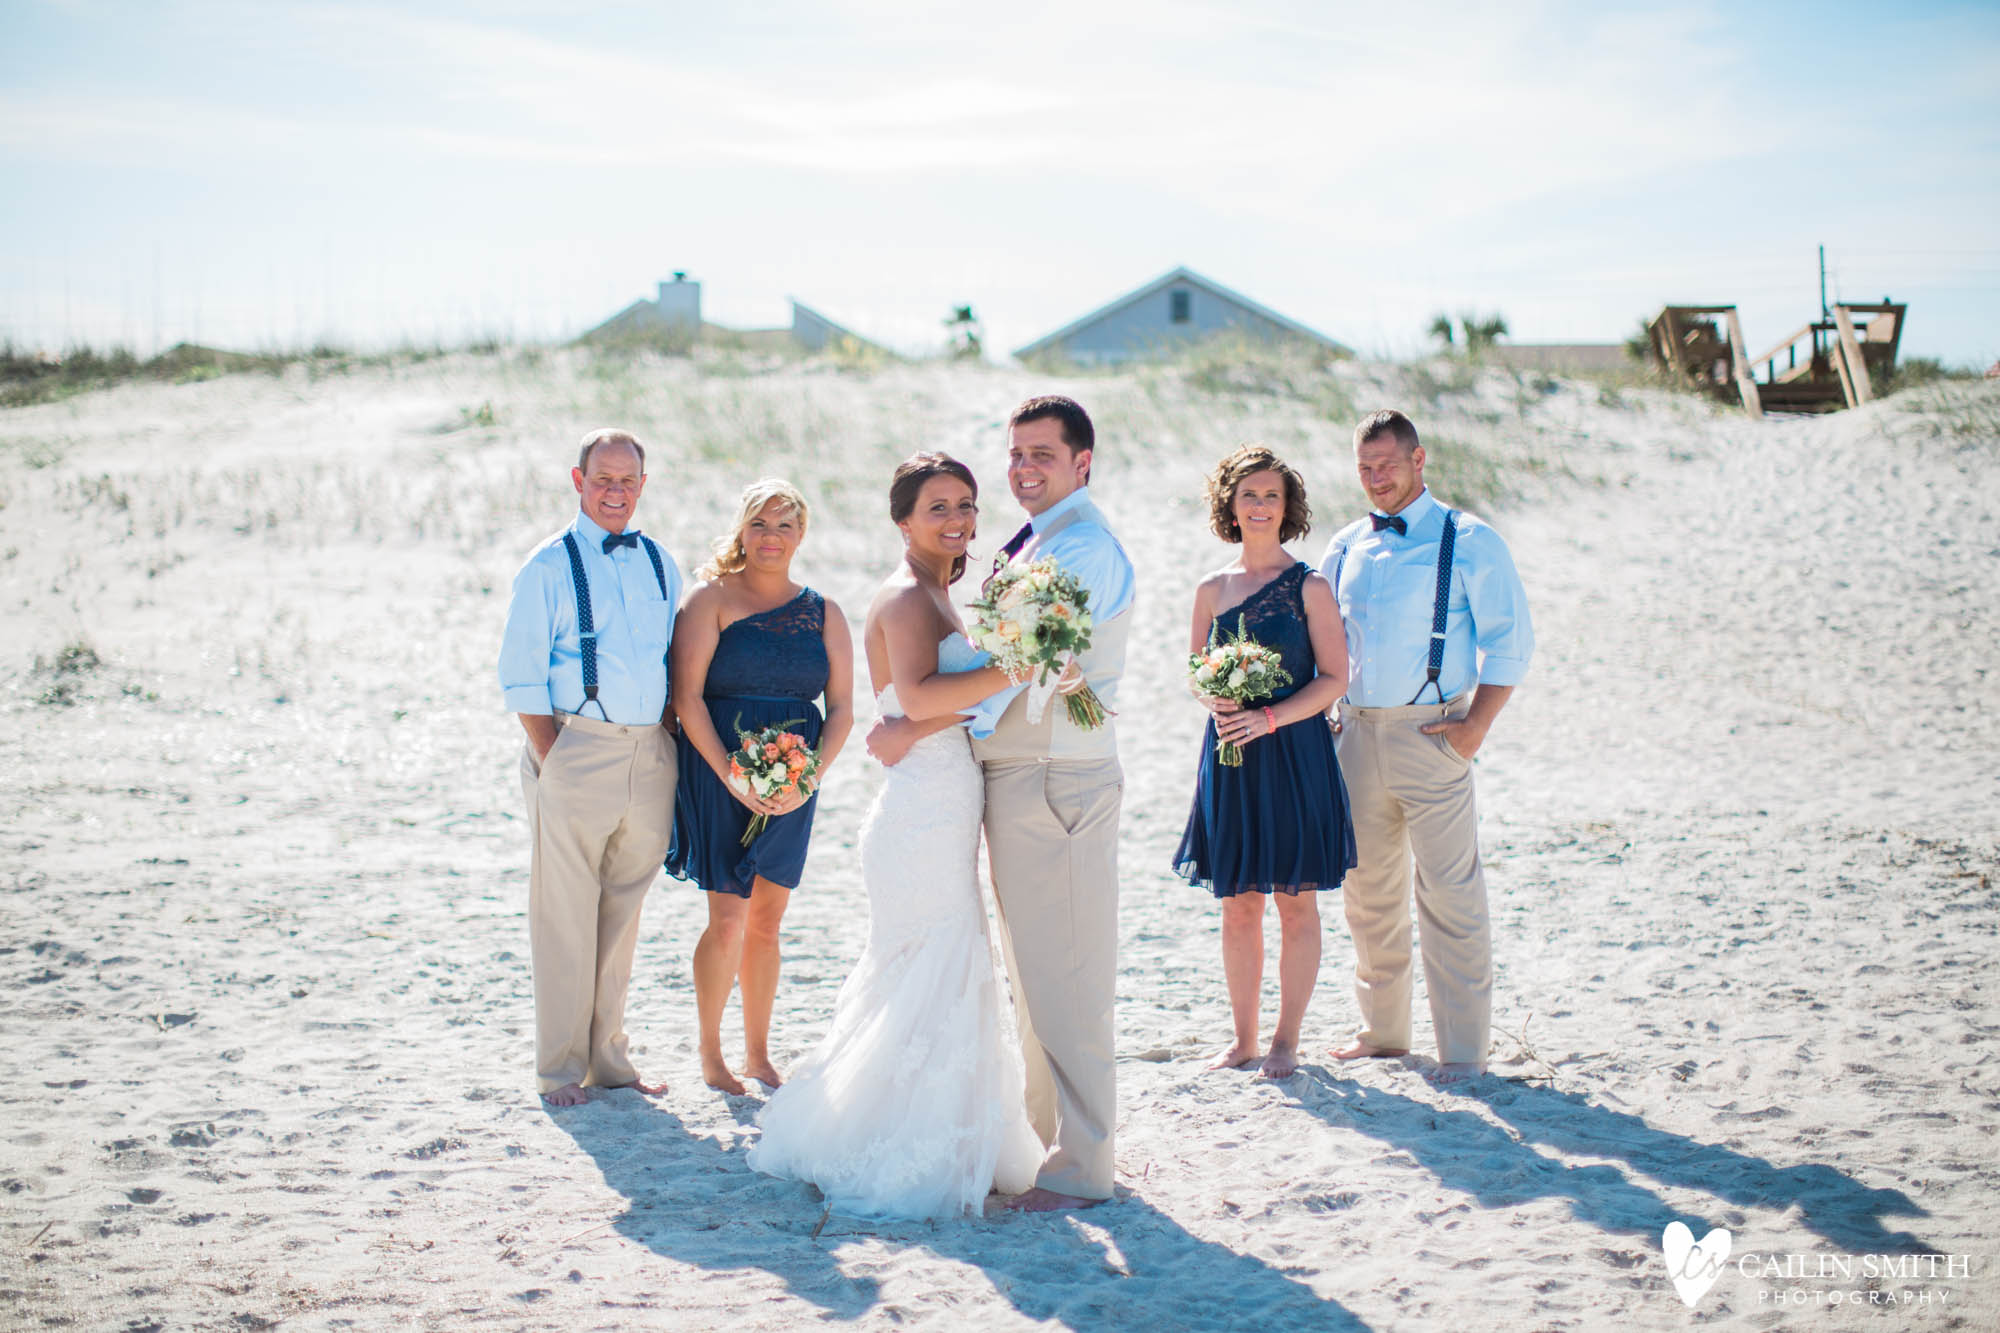 Kimberly_Ross_Amelia_Island_Wedding_Photography_023.jpg